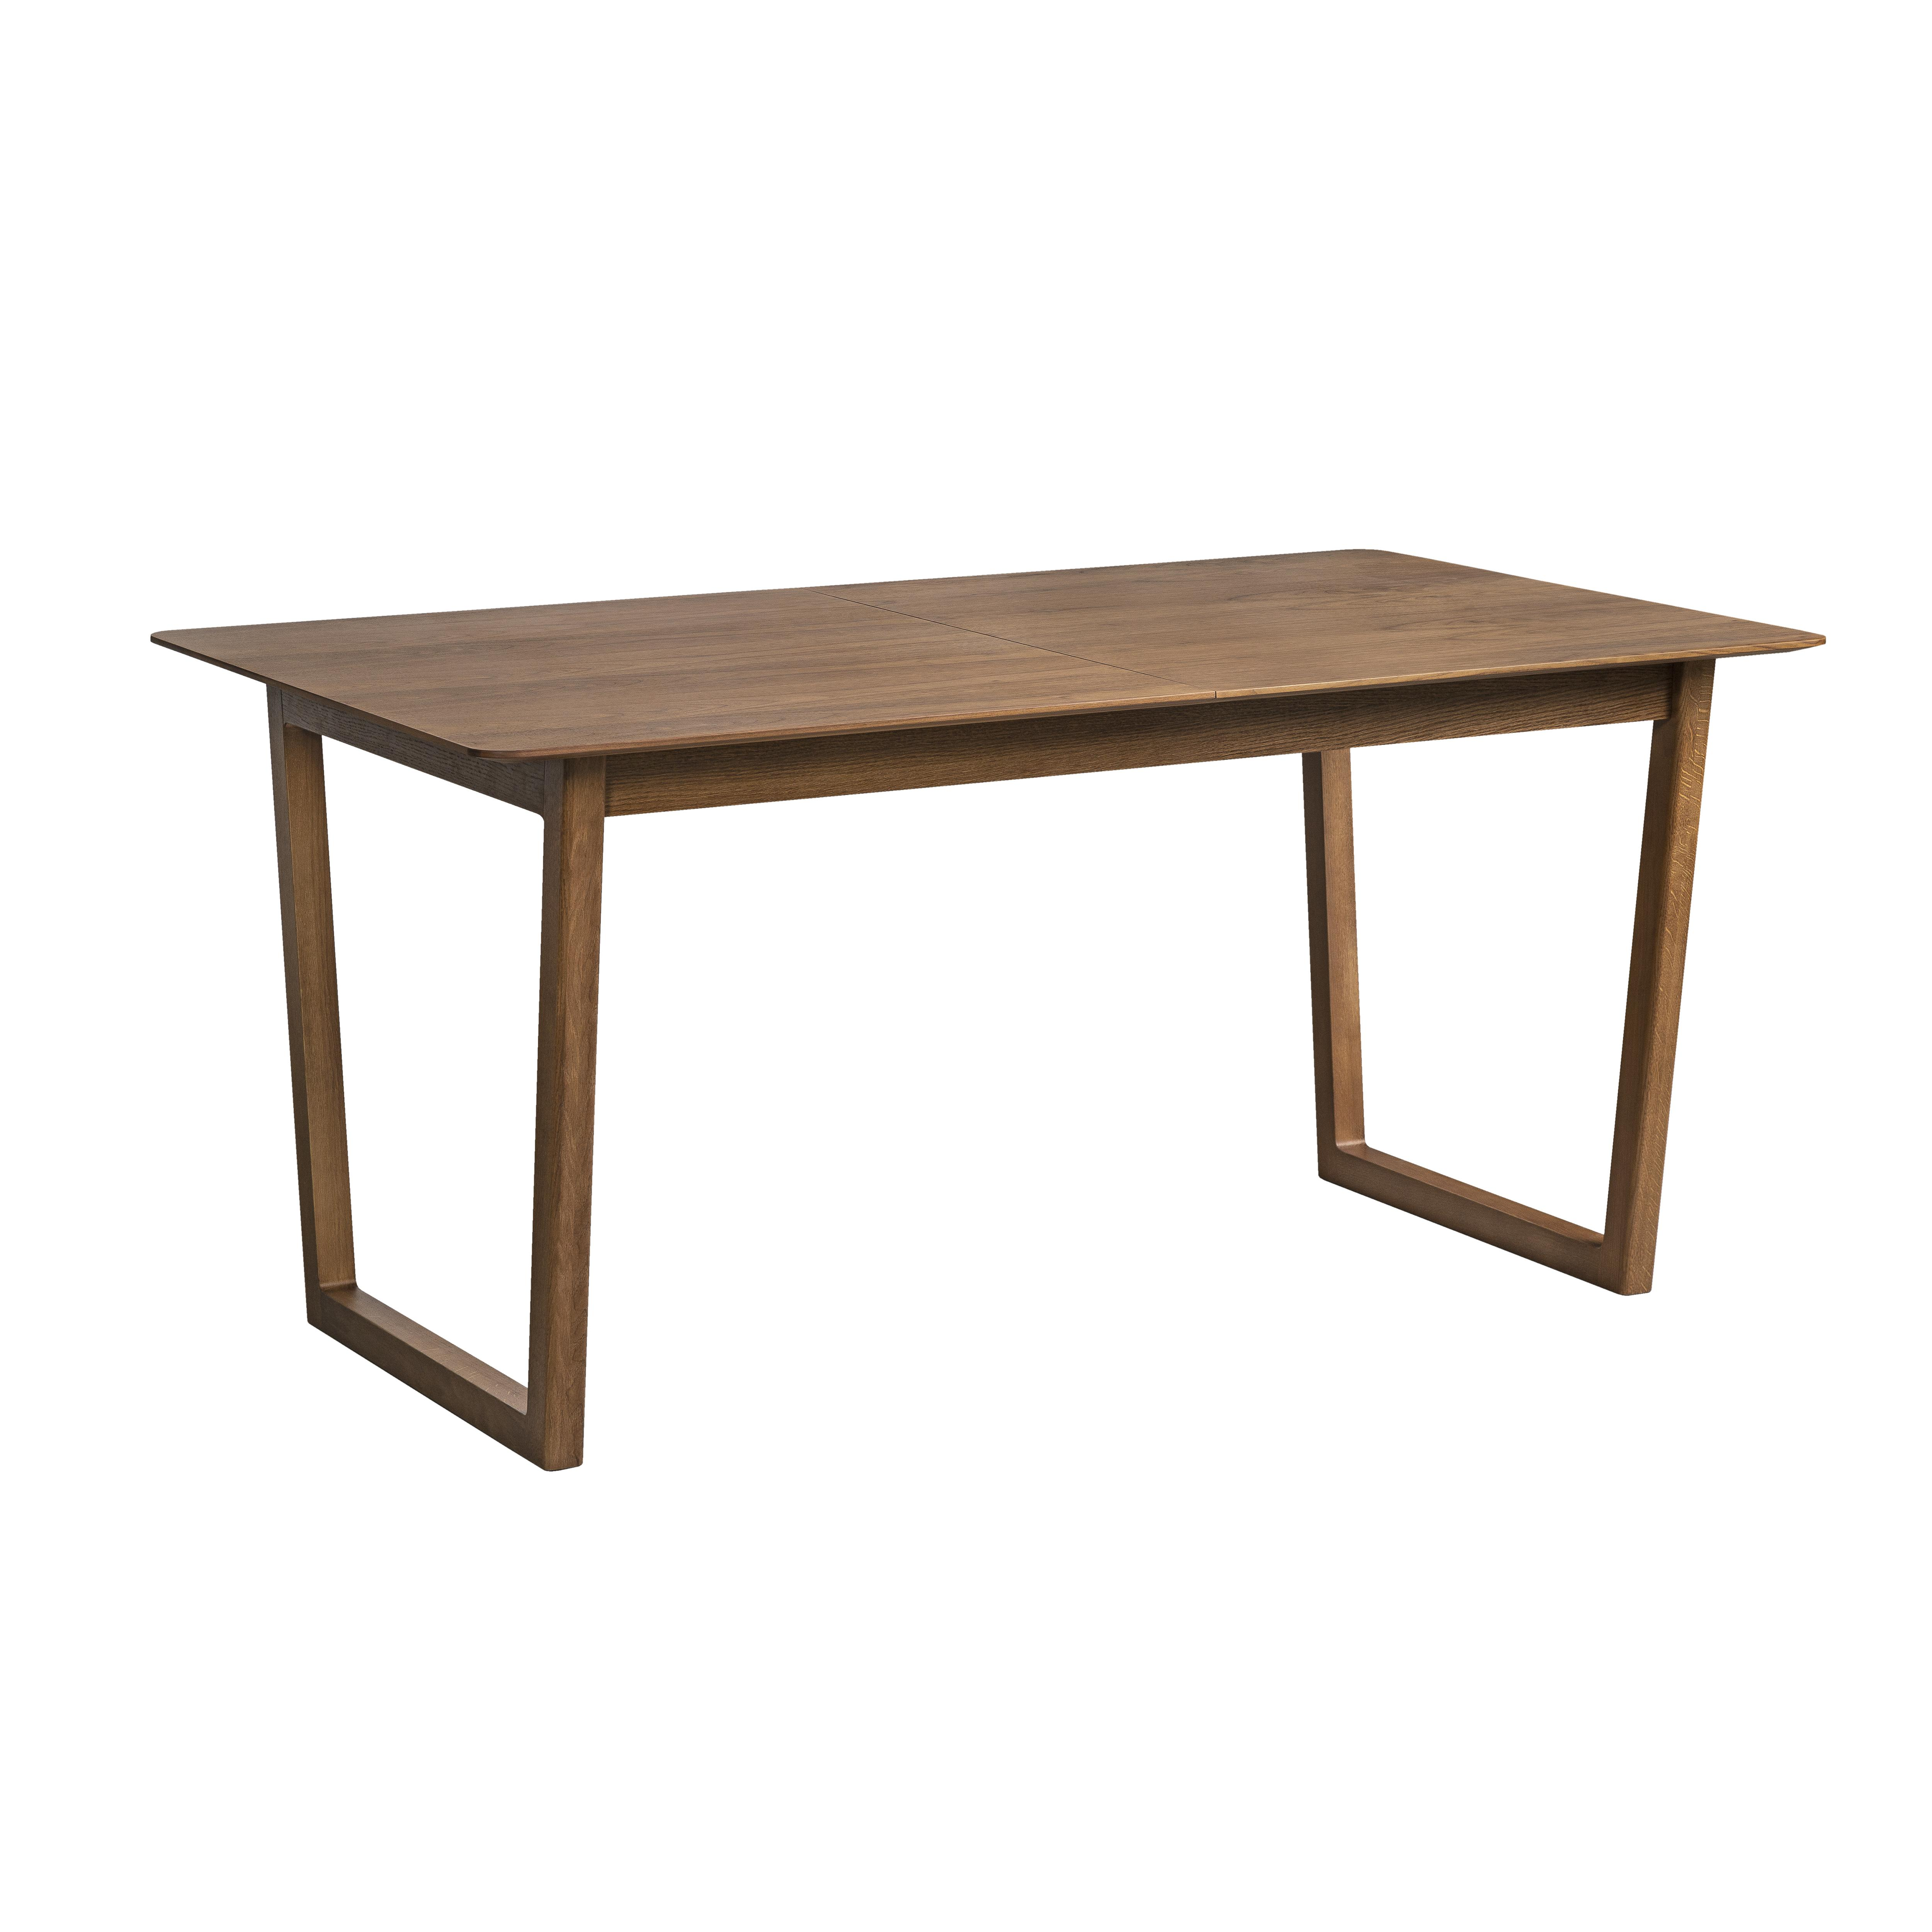 Ease double extending 4-6 seater dining table walnut